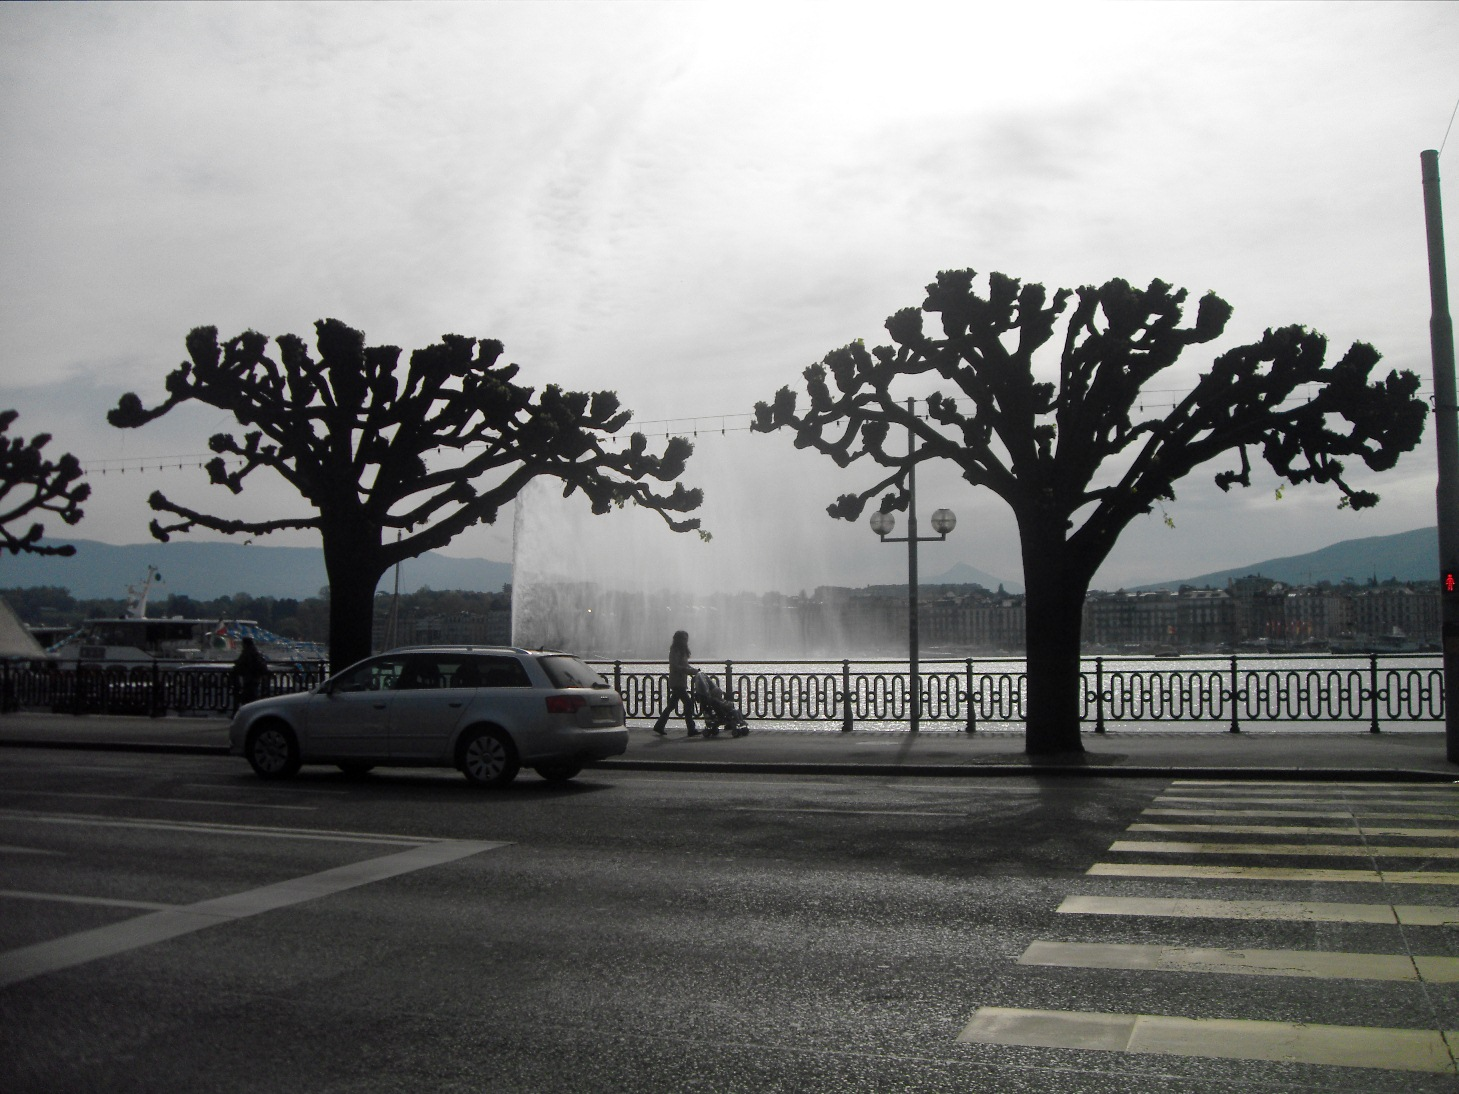 View of Jet d'Eau while crossing the street